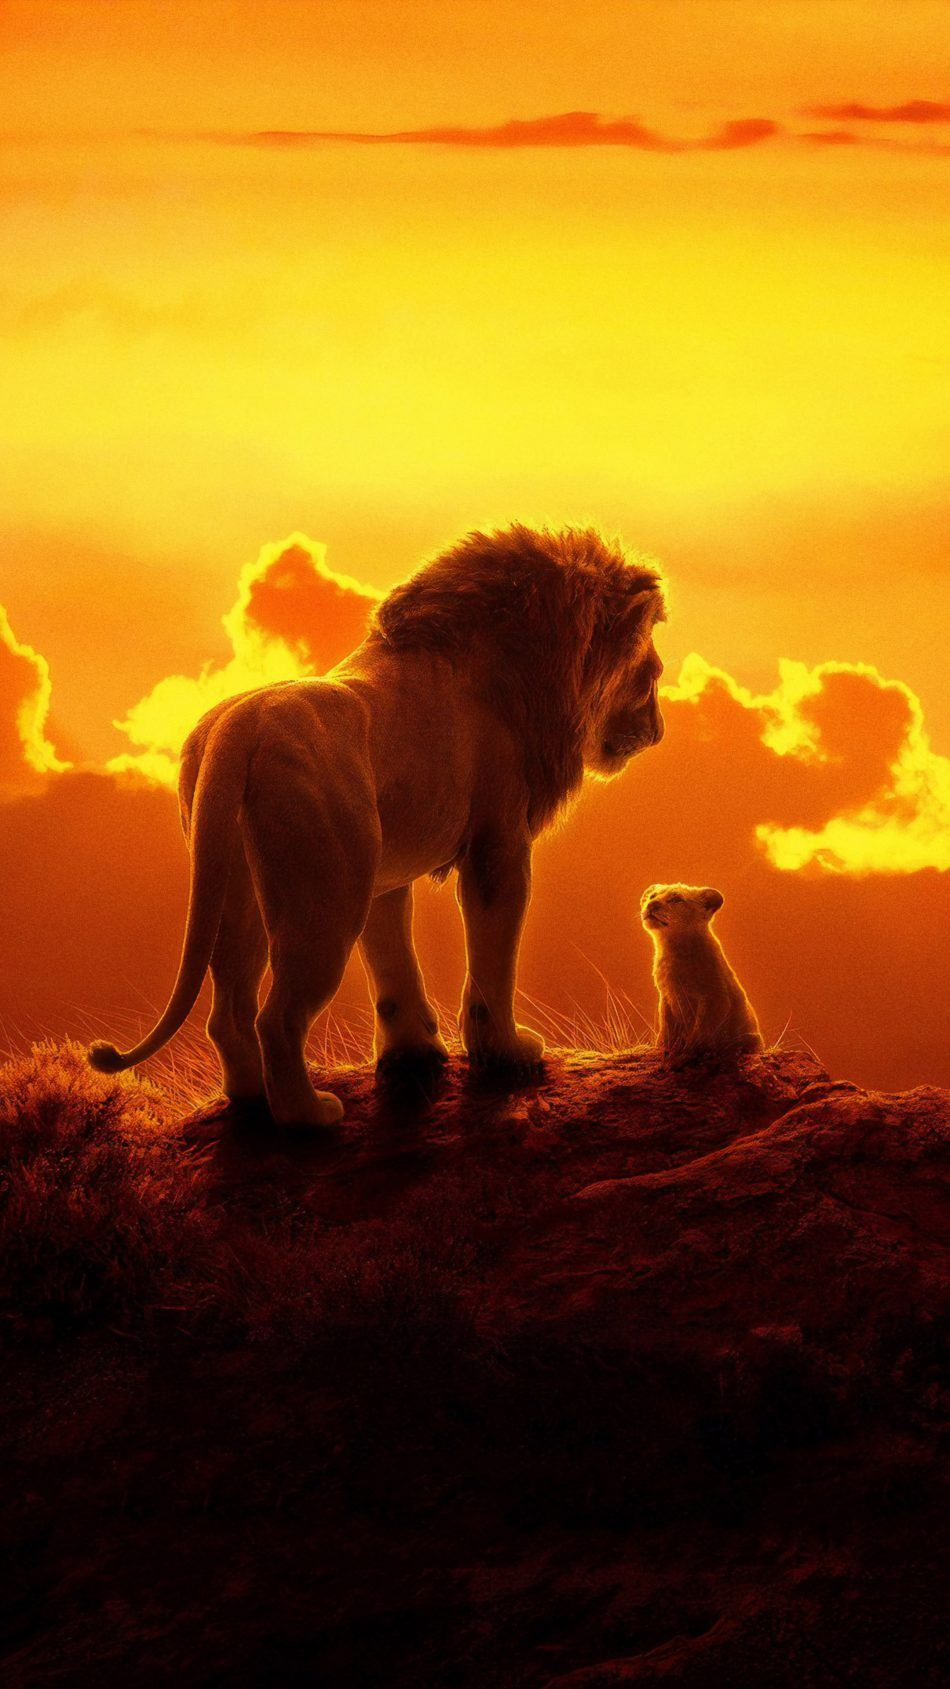 The Lion King Animation 2019 Desene disney, Regele leu